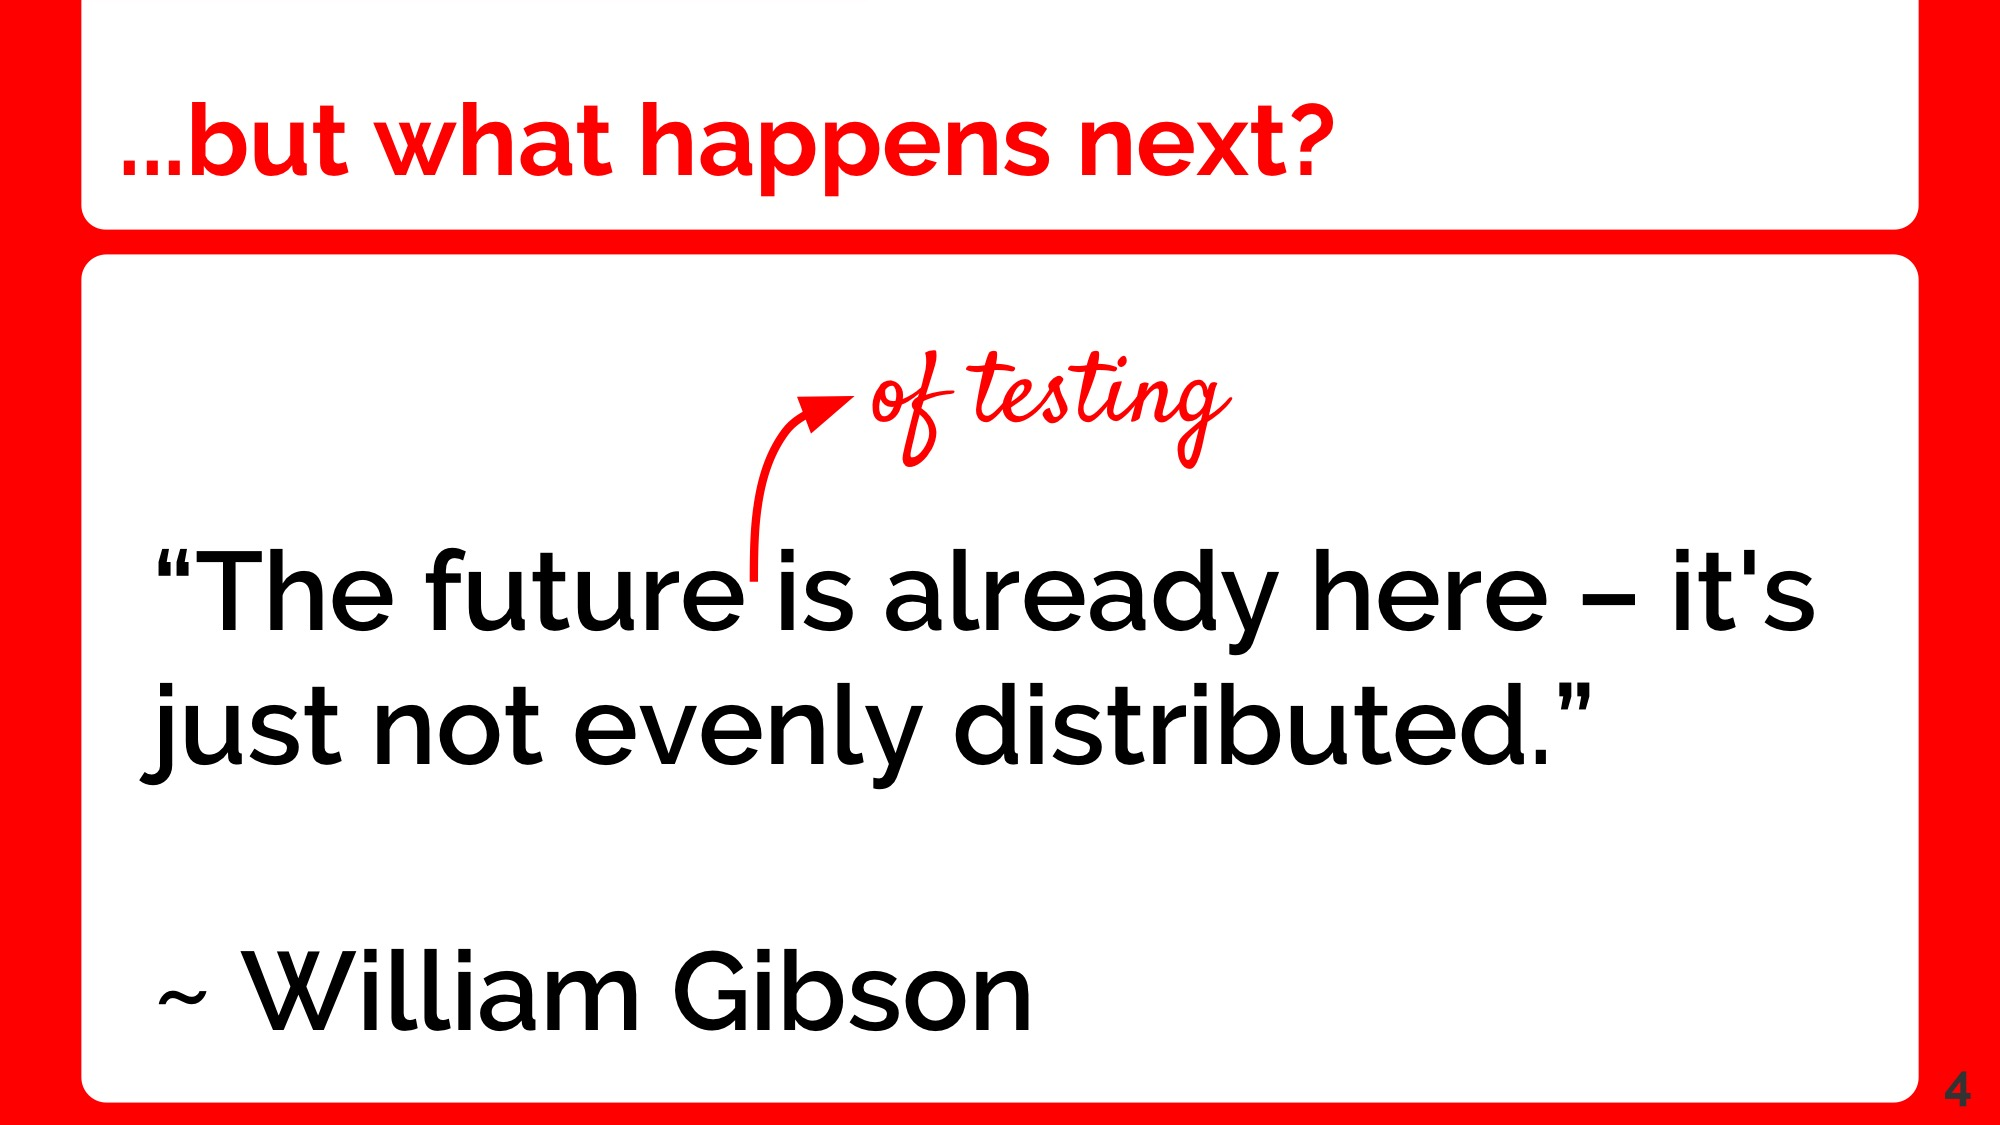 Alister Scott - The Future of Testing is Distributed FINAL(1) 04